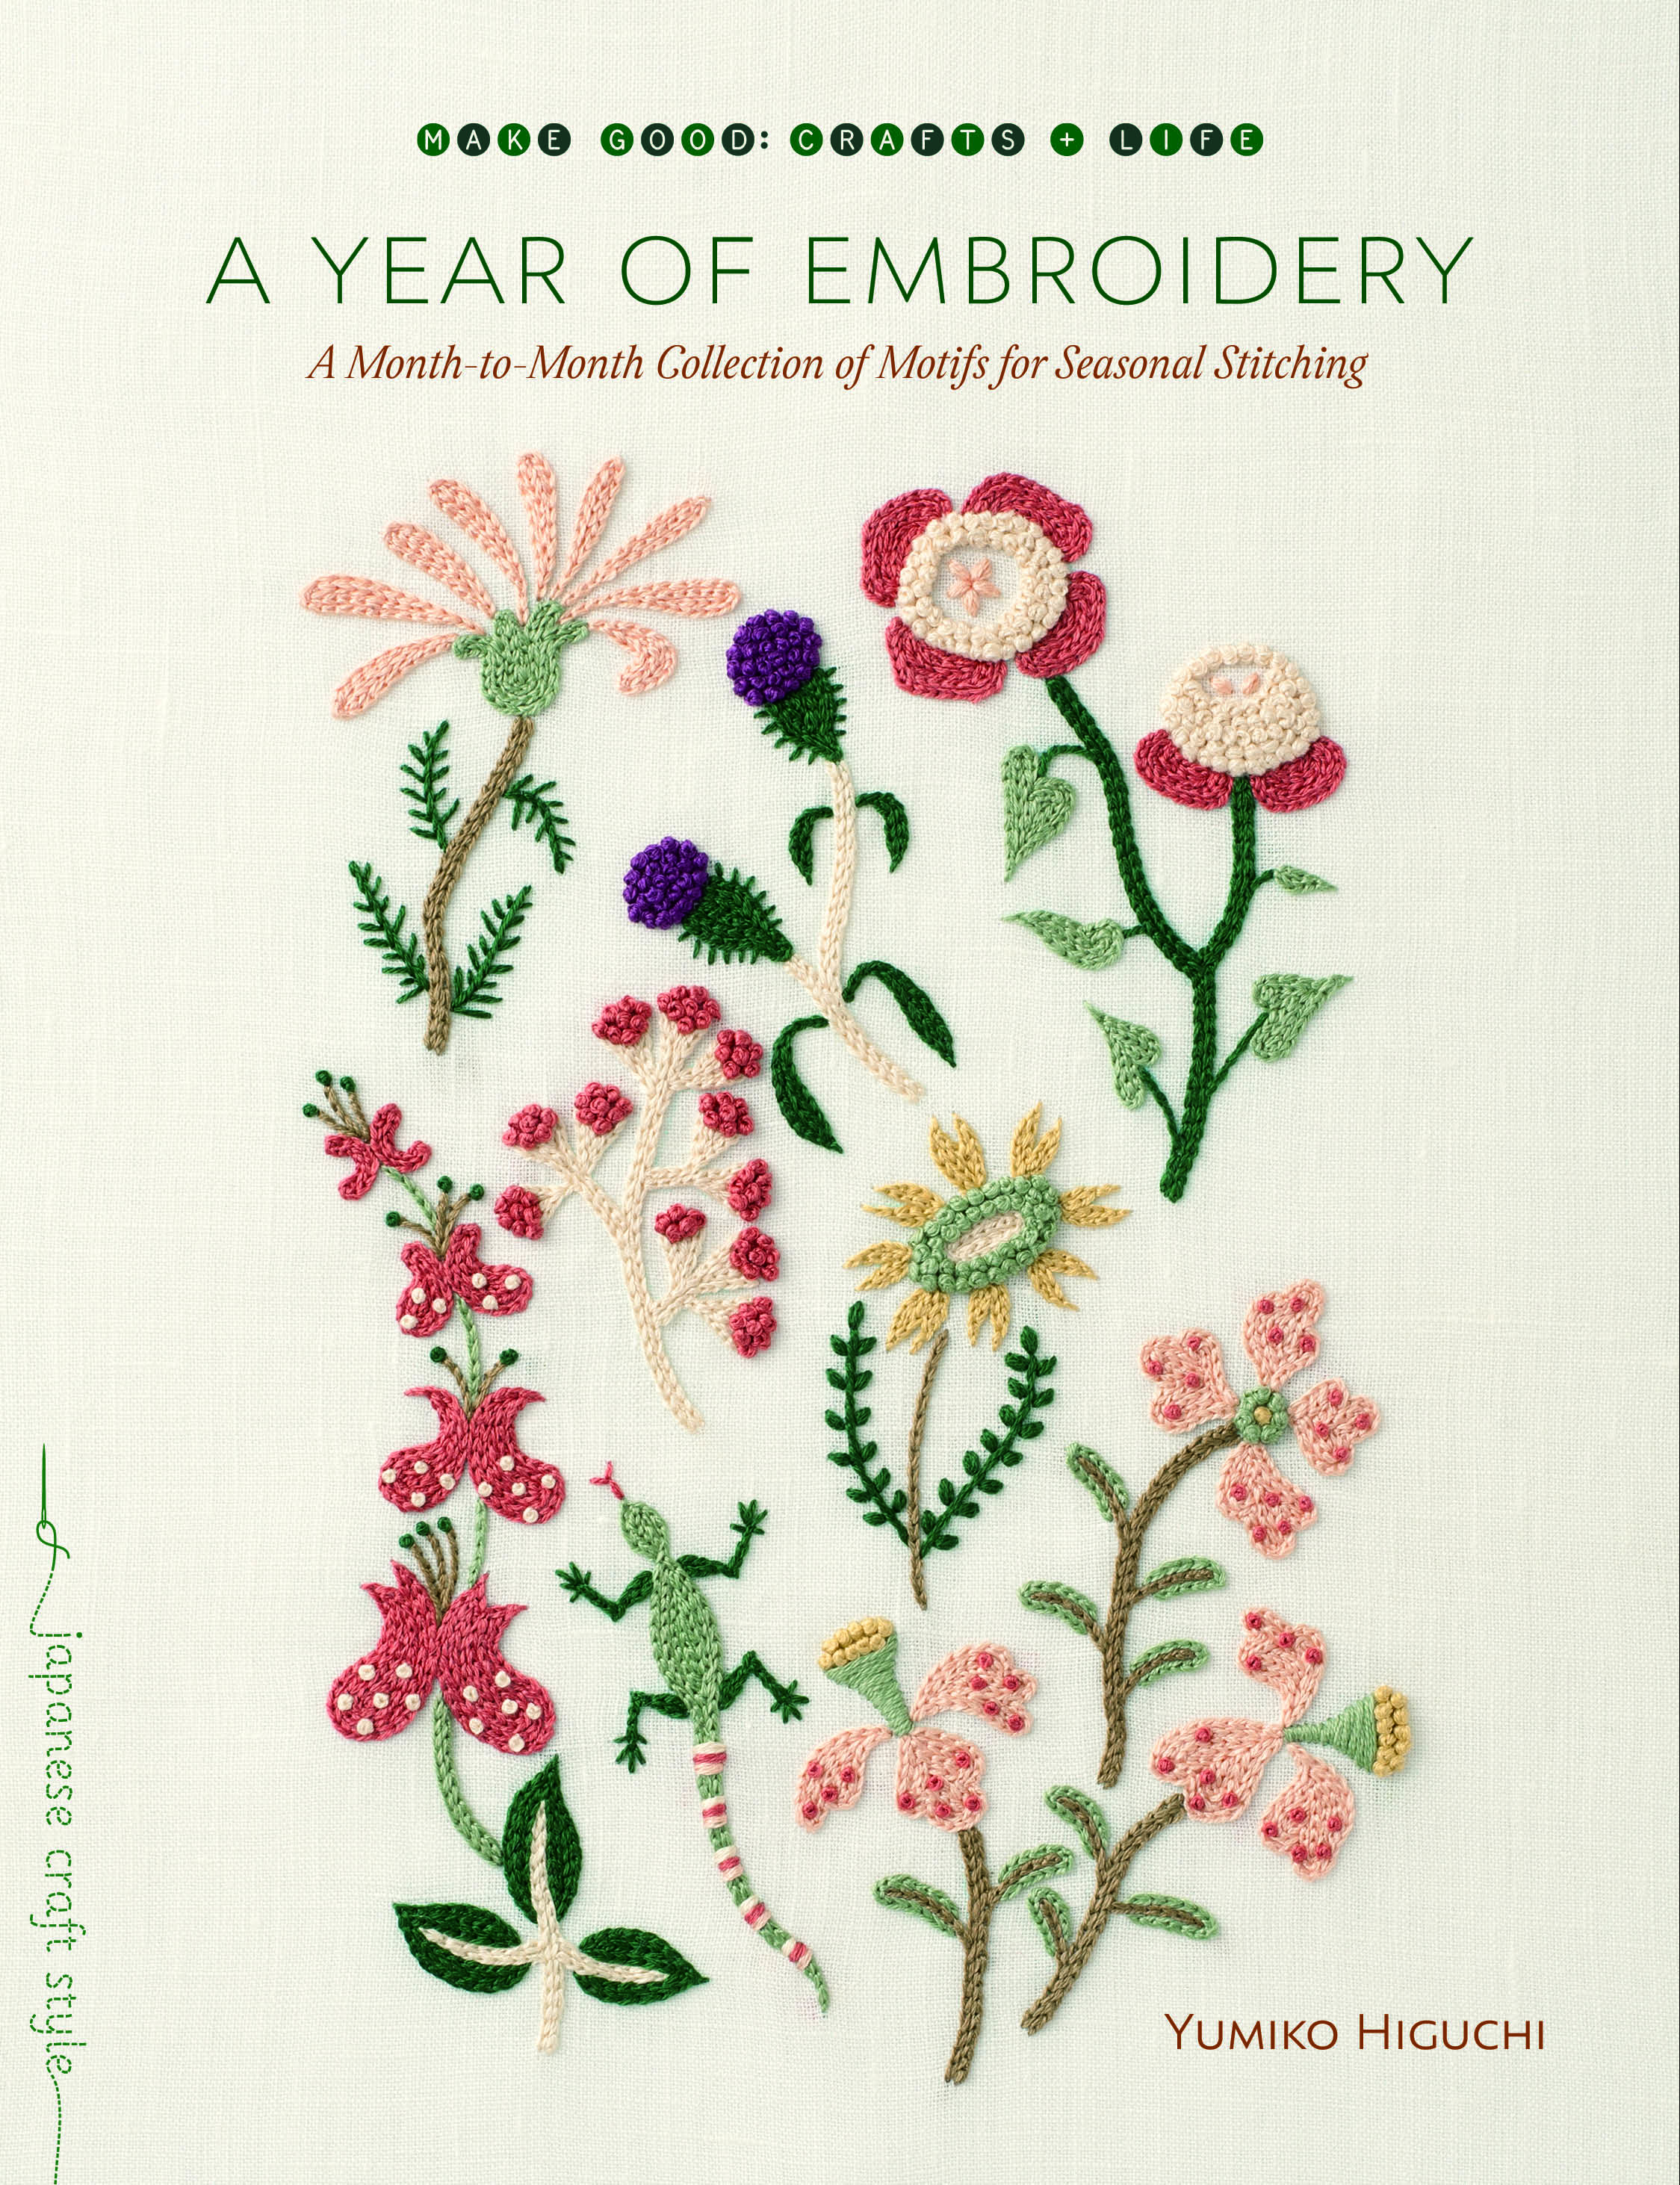 Diy Floral Cactus Embroidery Projects From A Year Of Embroidery